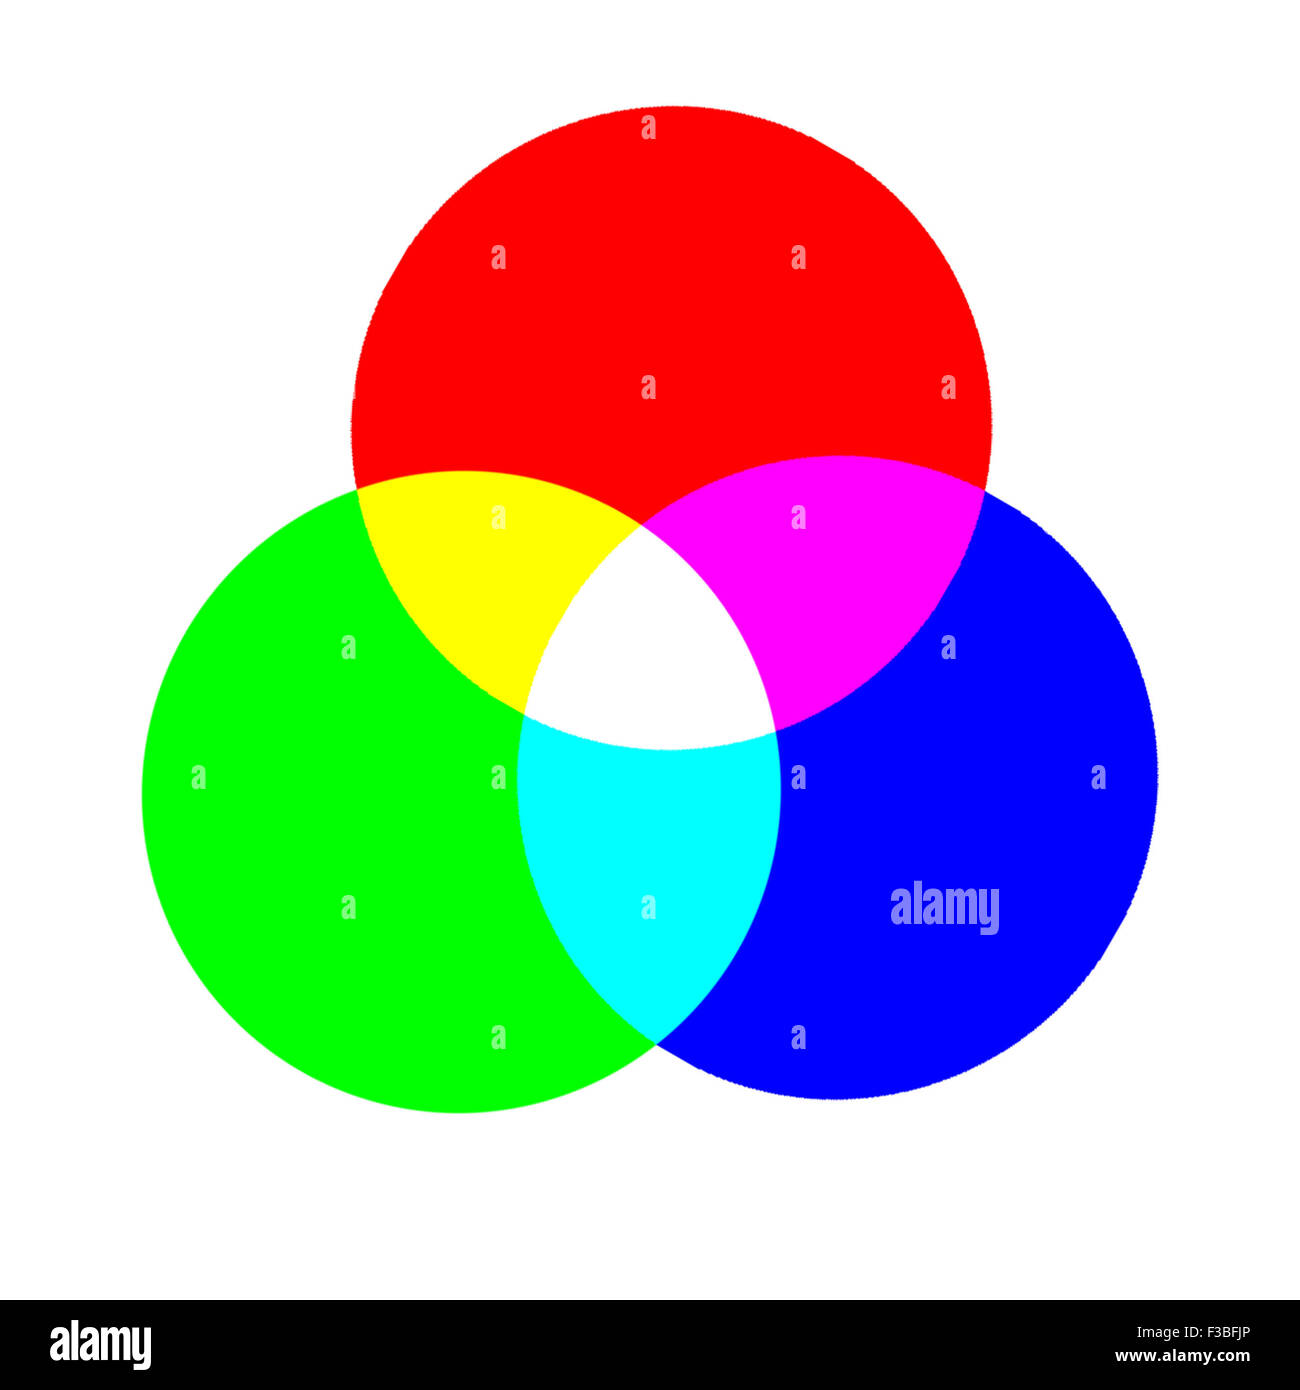 Color Wheel Made Up Of Three Primary Colors Red Green And Blue Overlapping To Produce Cyan Magenta Yellow